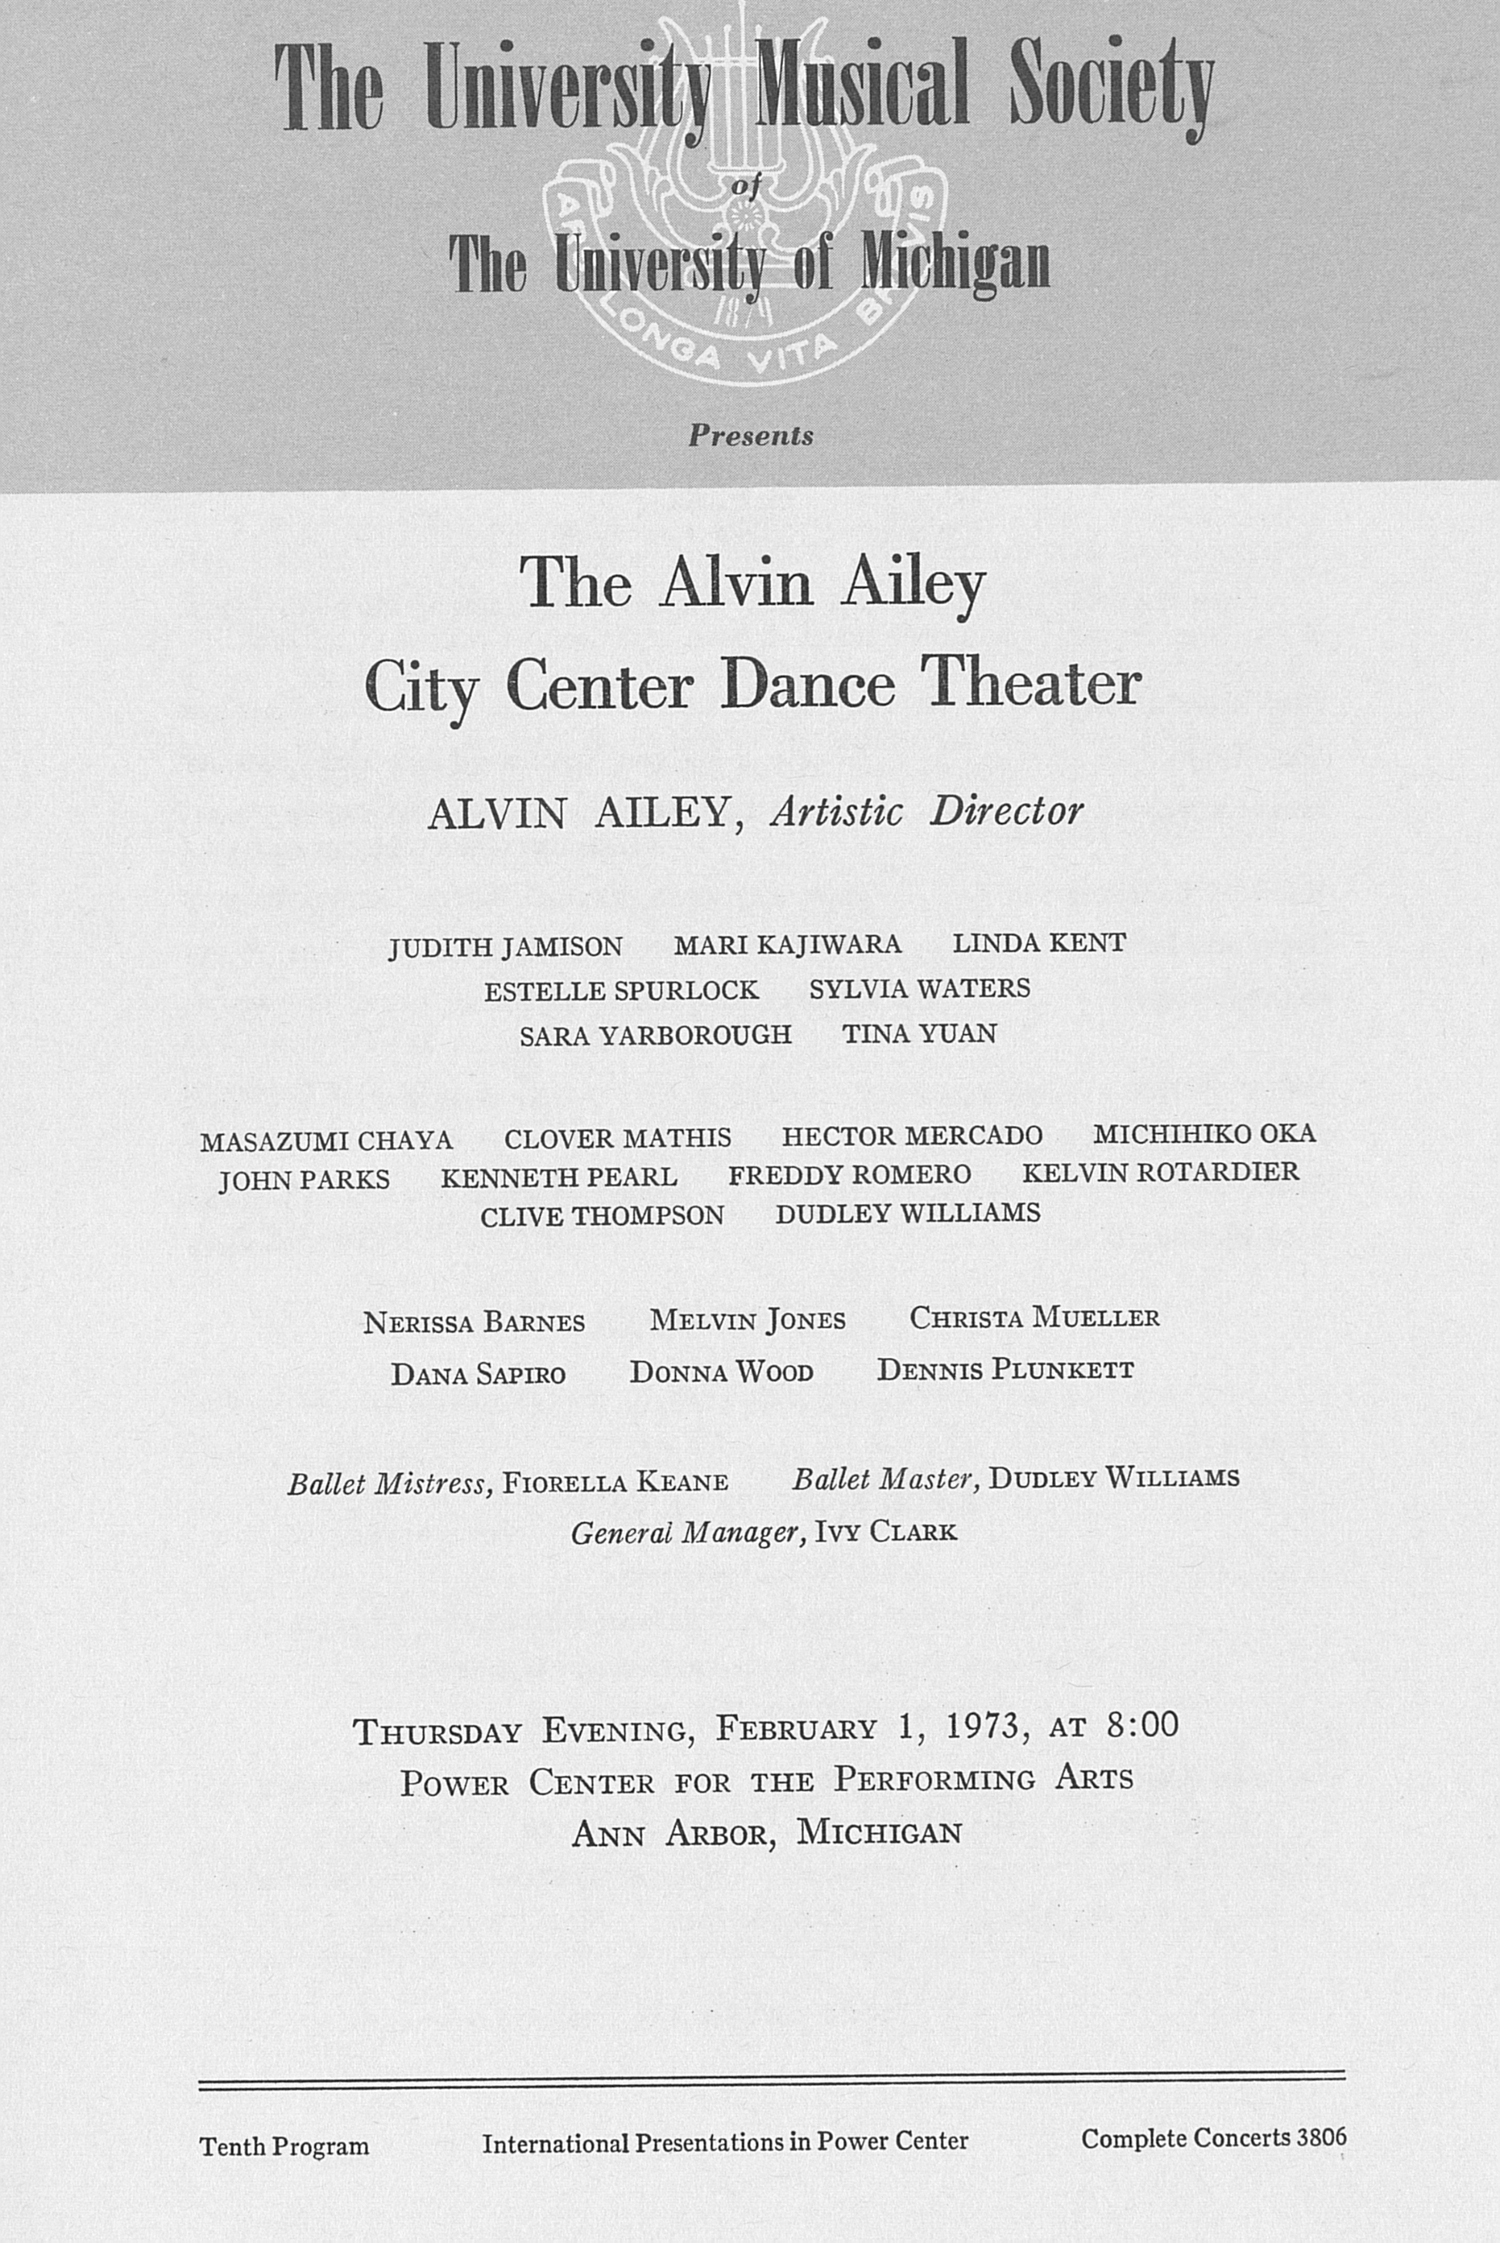 UMS Concert Program, February 1, 1973: The Alvin Ailey City Center Dance Theater -- Alvin Ailey image